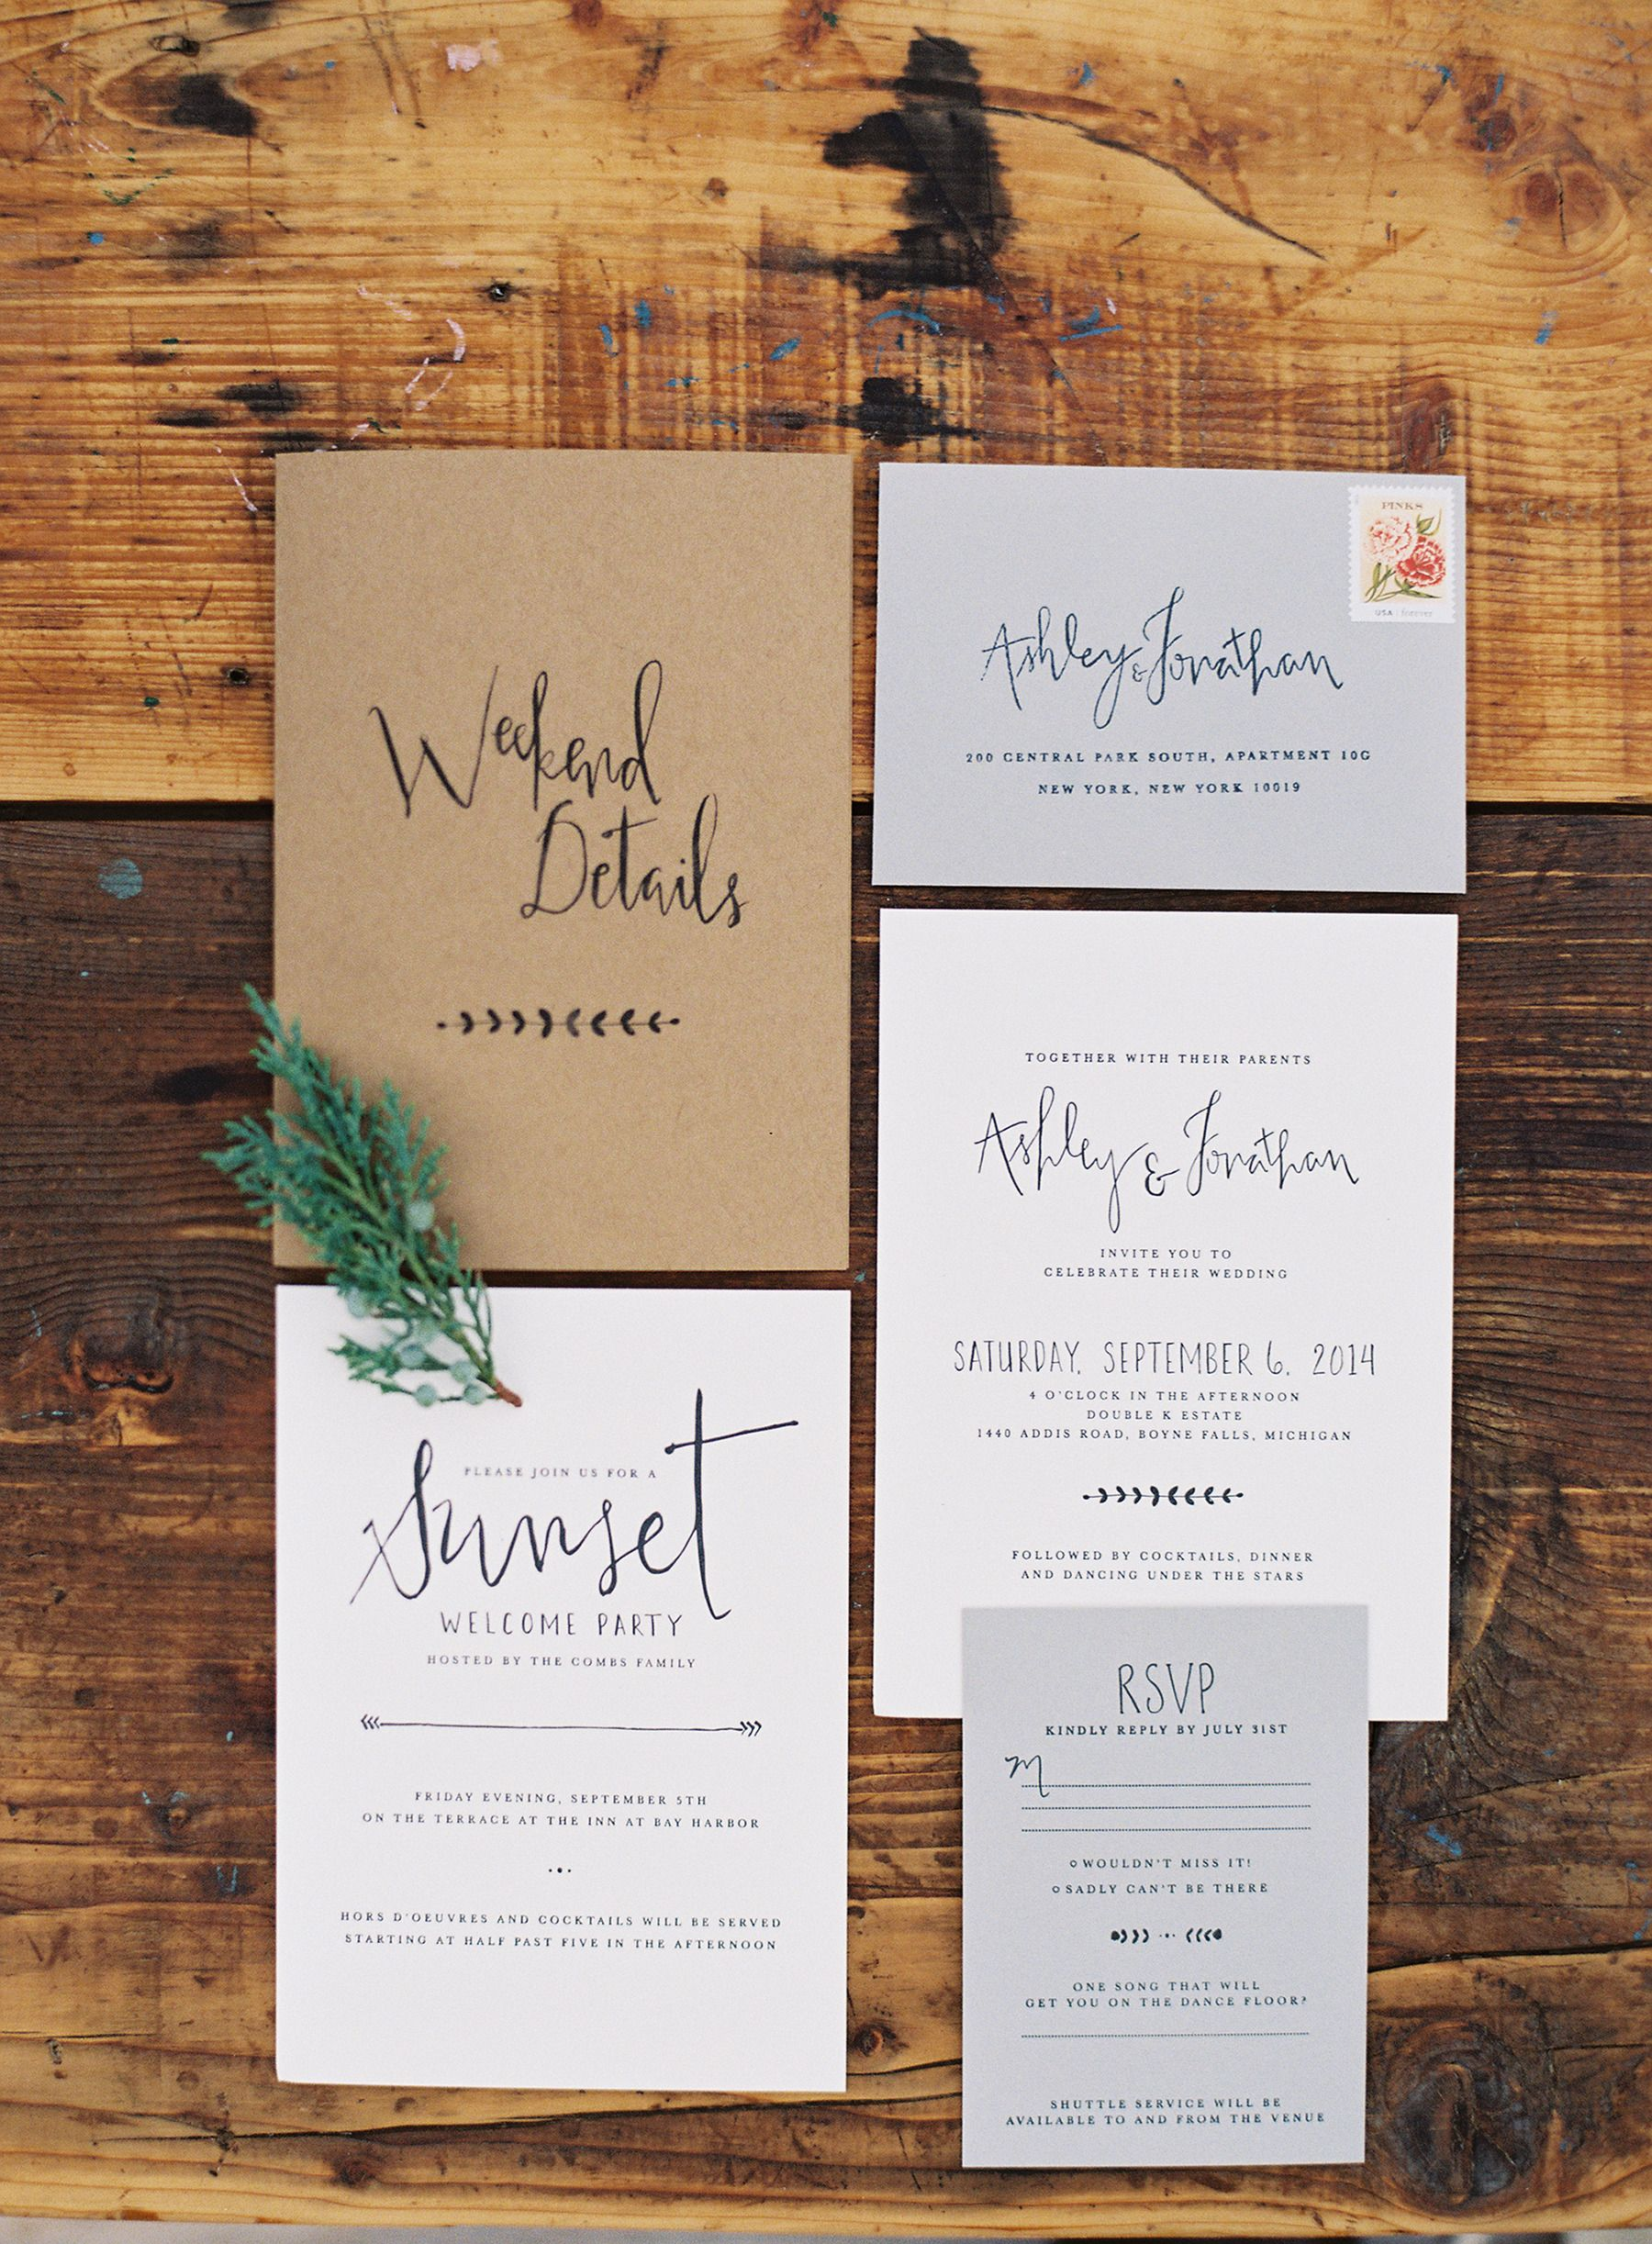 free wedding borders for invitations%0A Rustic Chic Estate Wedding in Northern Michigan